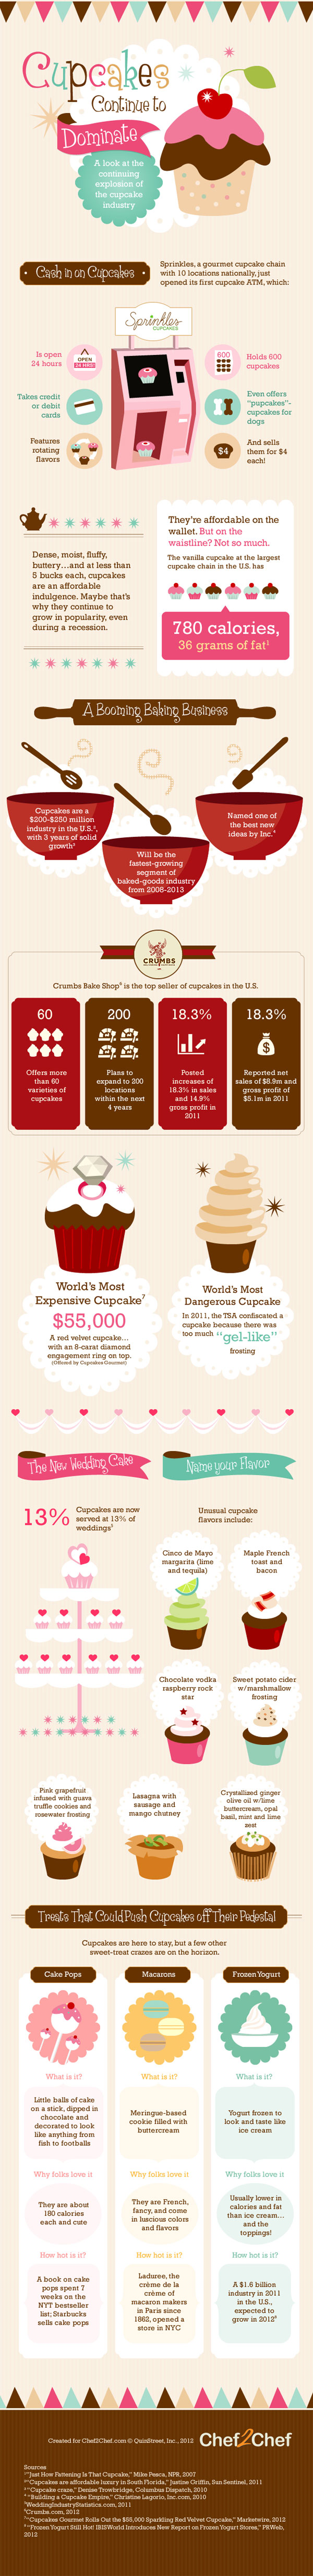 Cupcake Industry Trends and Statistics